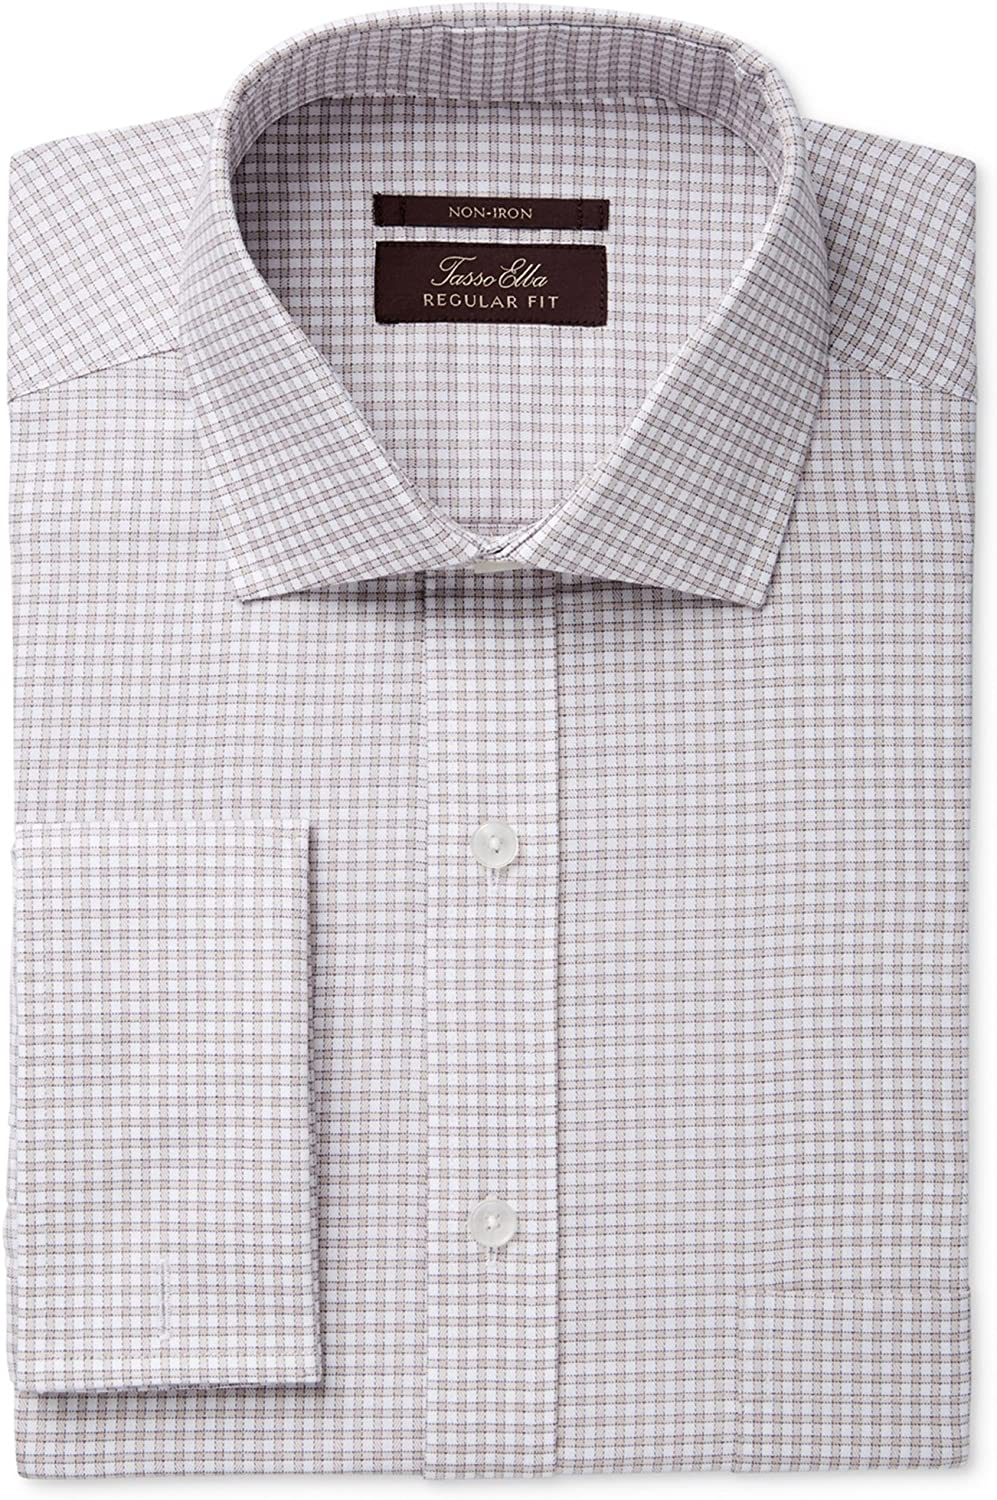 Tasso Elba Mens Non-Iron Tonal Button Up Dress Shirt